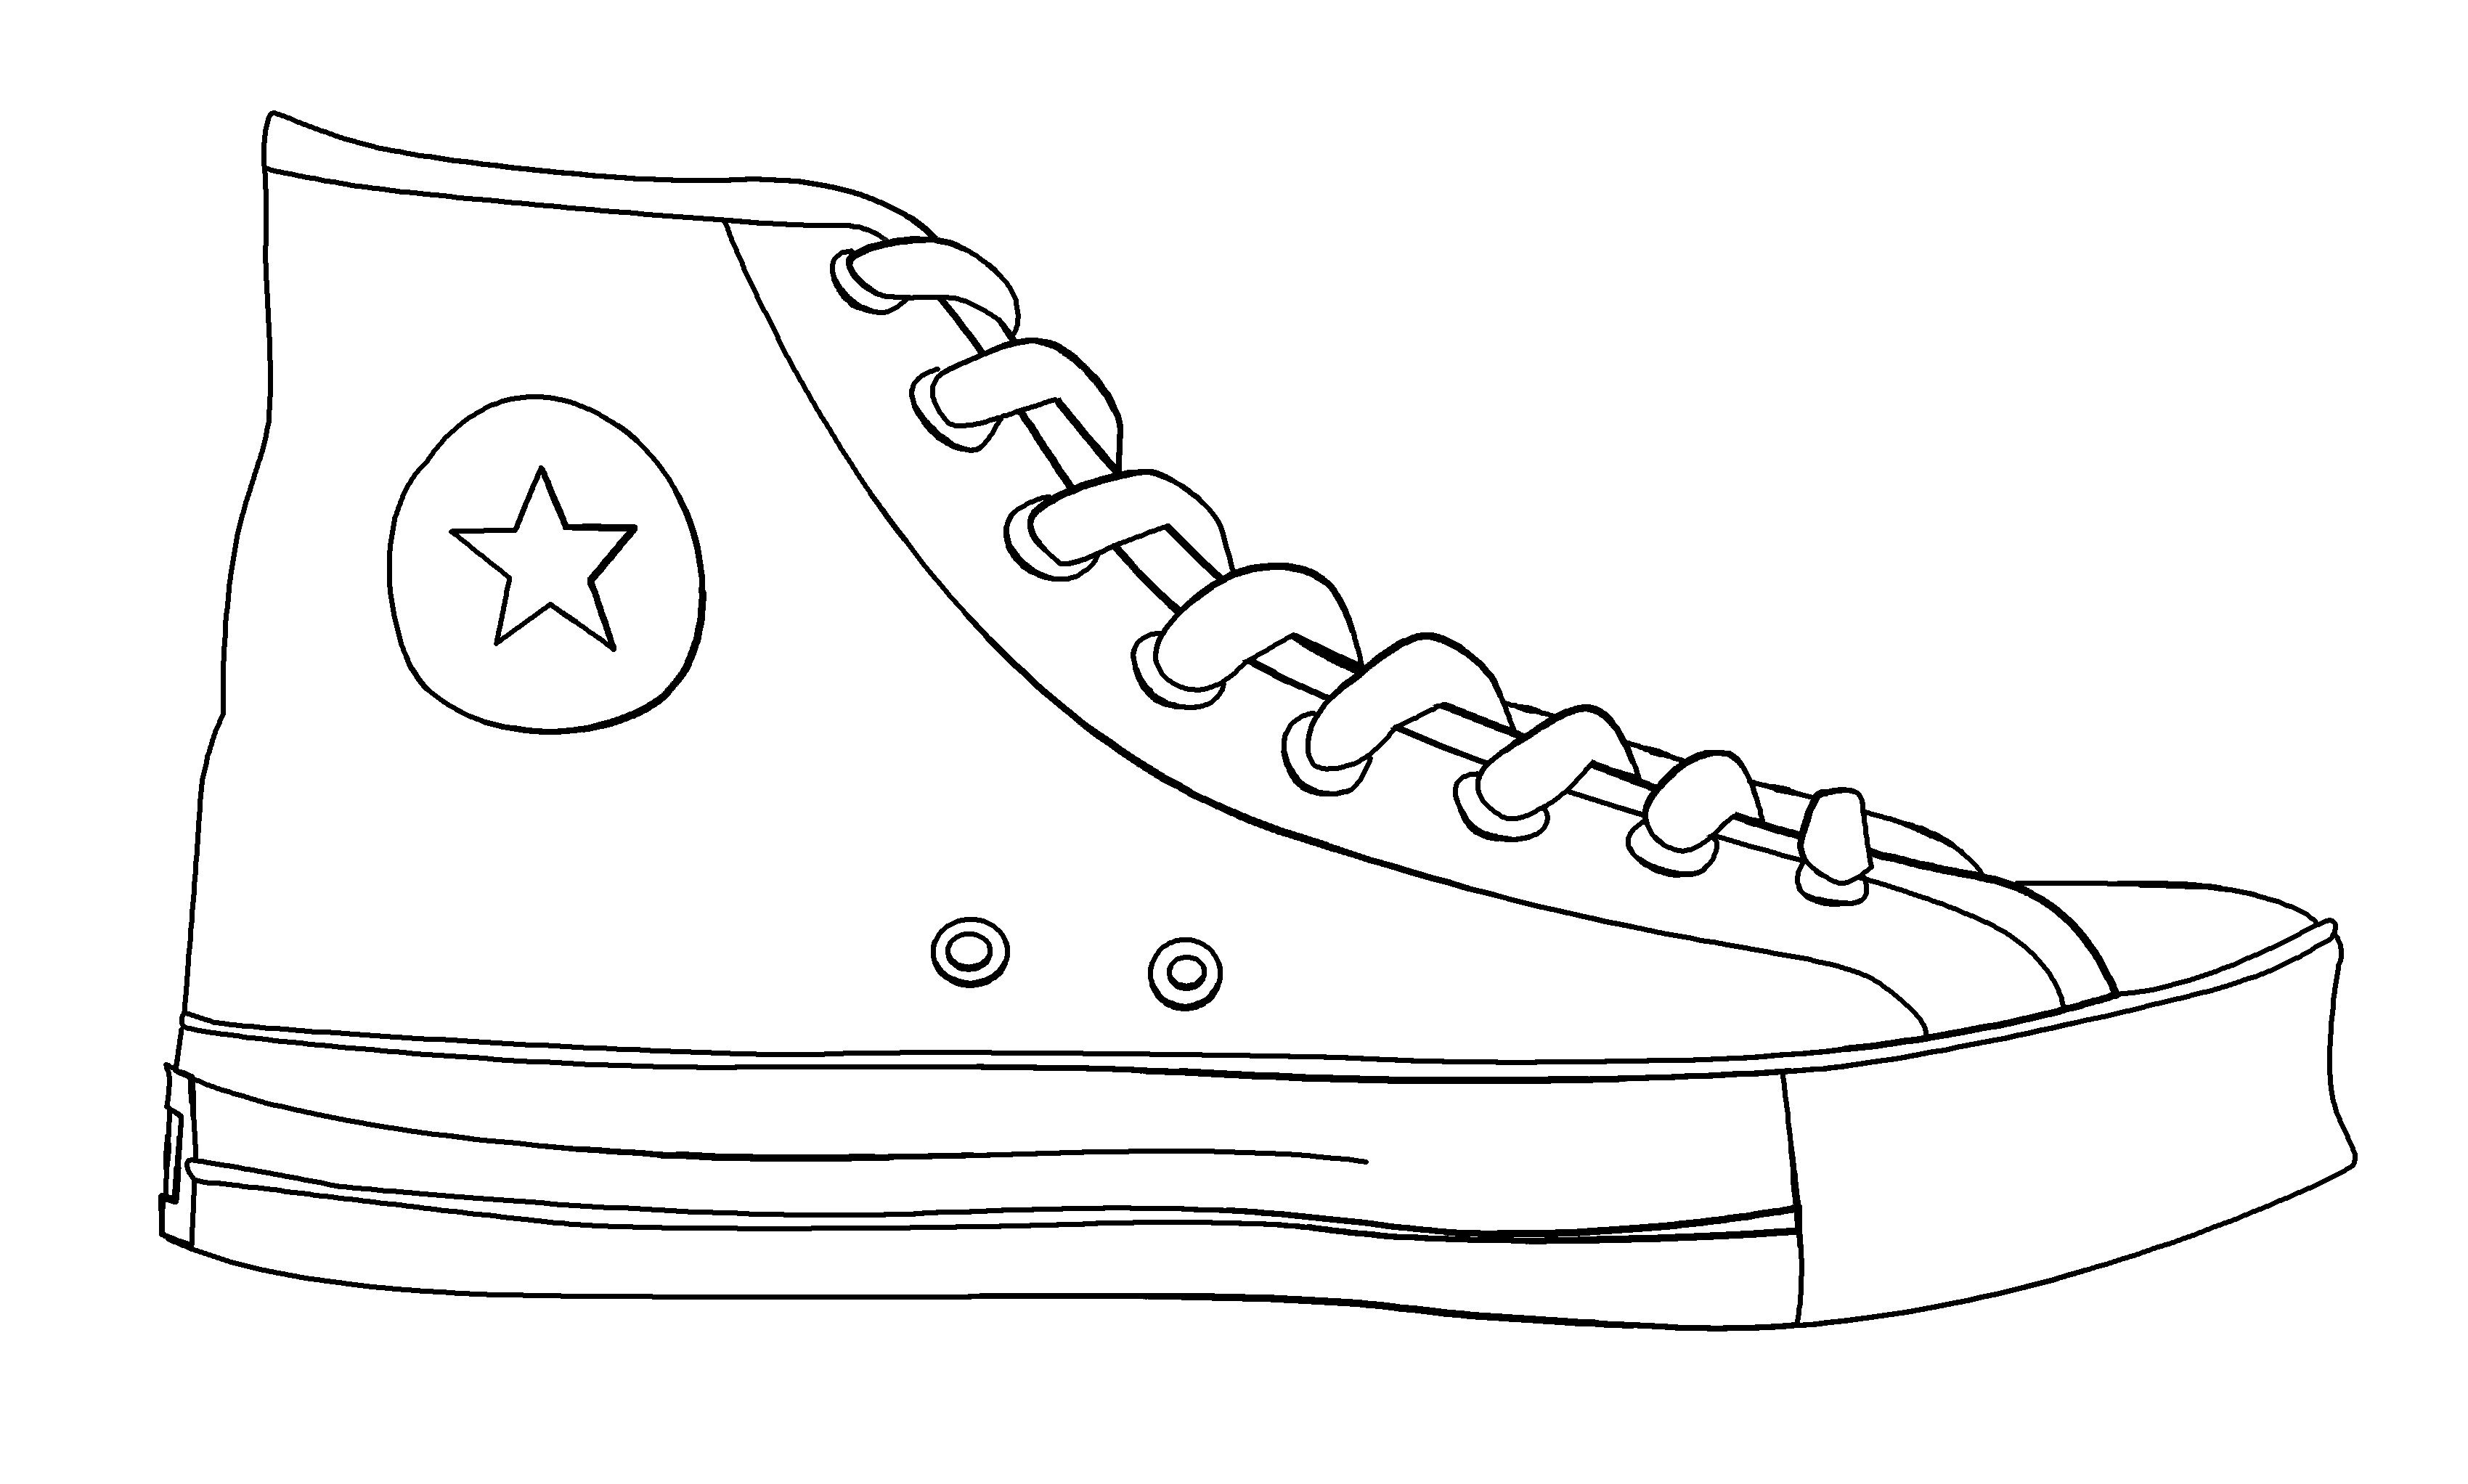 Shoe Templates, Shoe Template Printable, Art Ideas, Pete The Cat Shoes